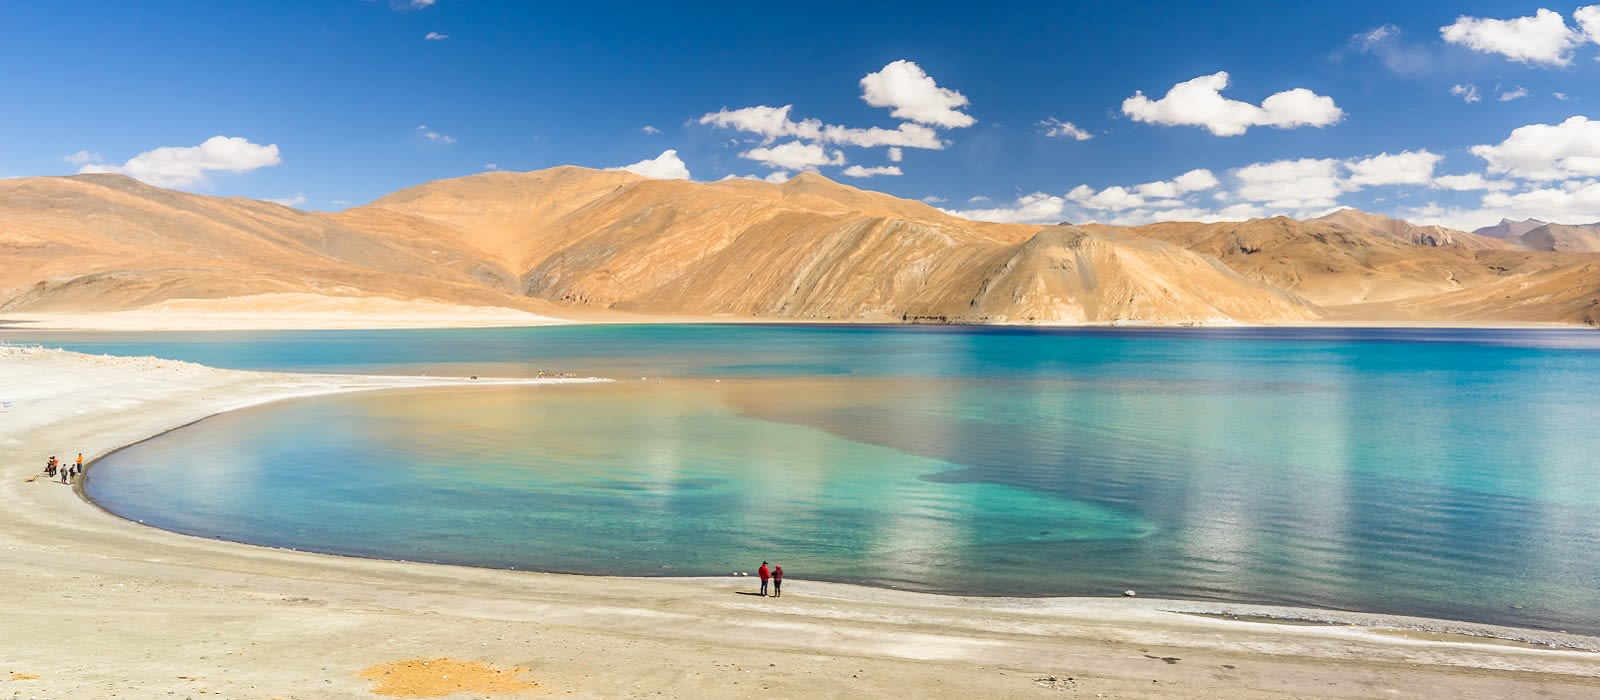 Leh's Buddhist Heritage and Natural Wonders Tour Trip 4